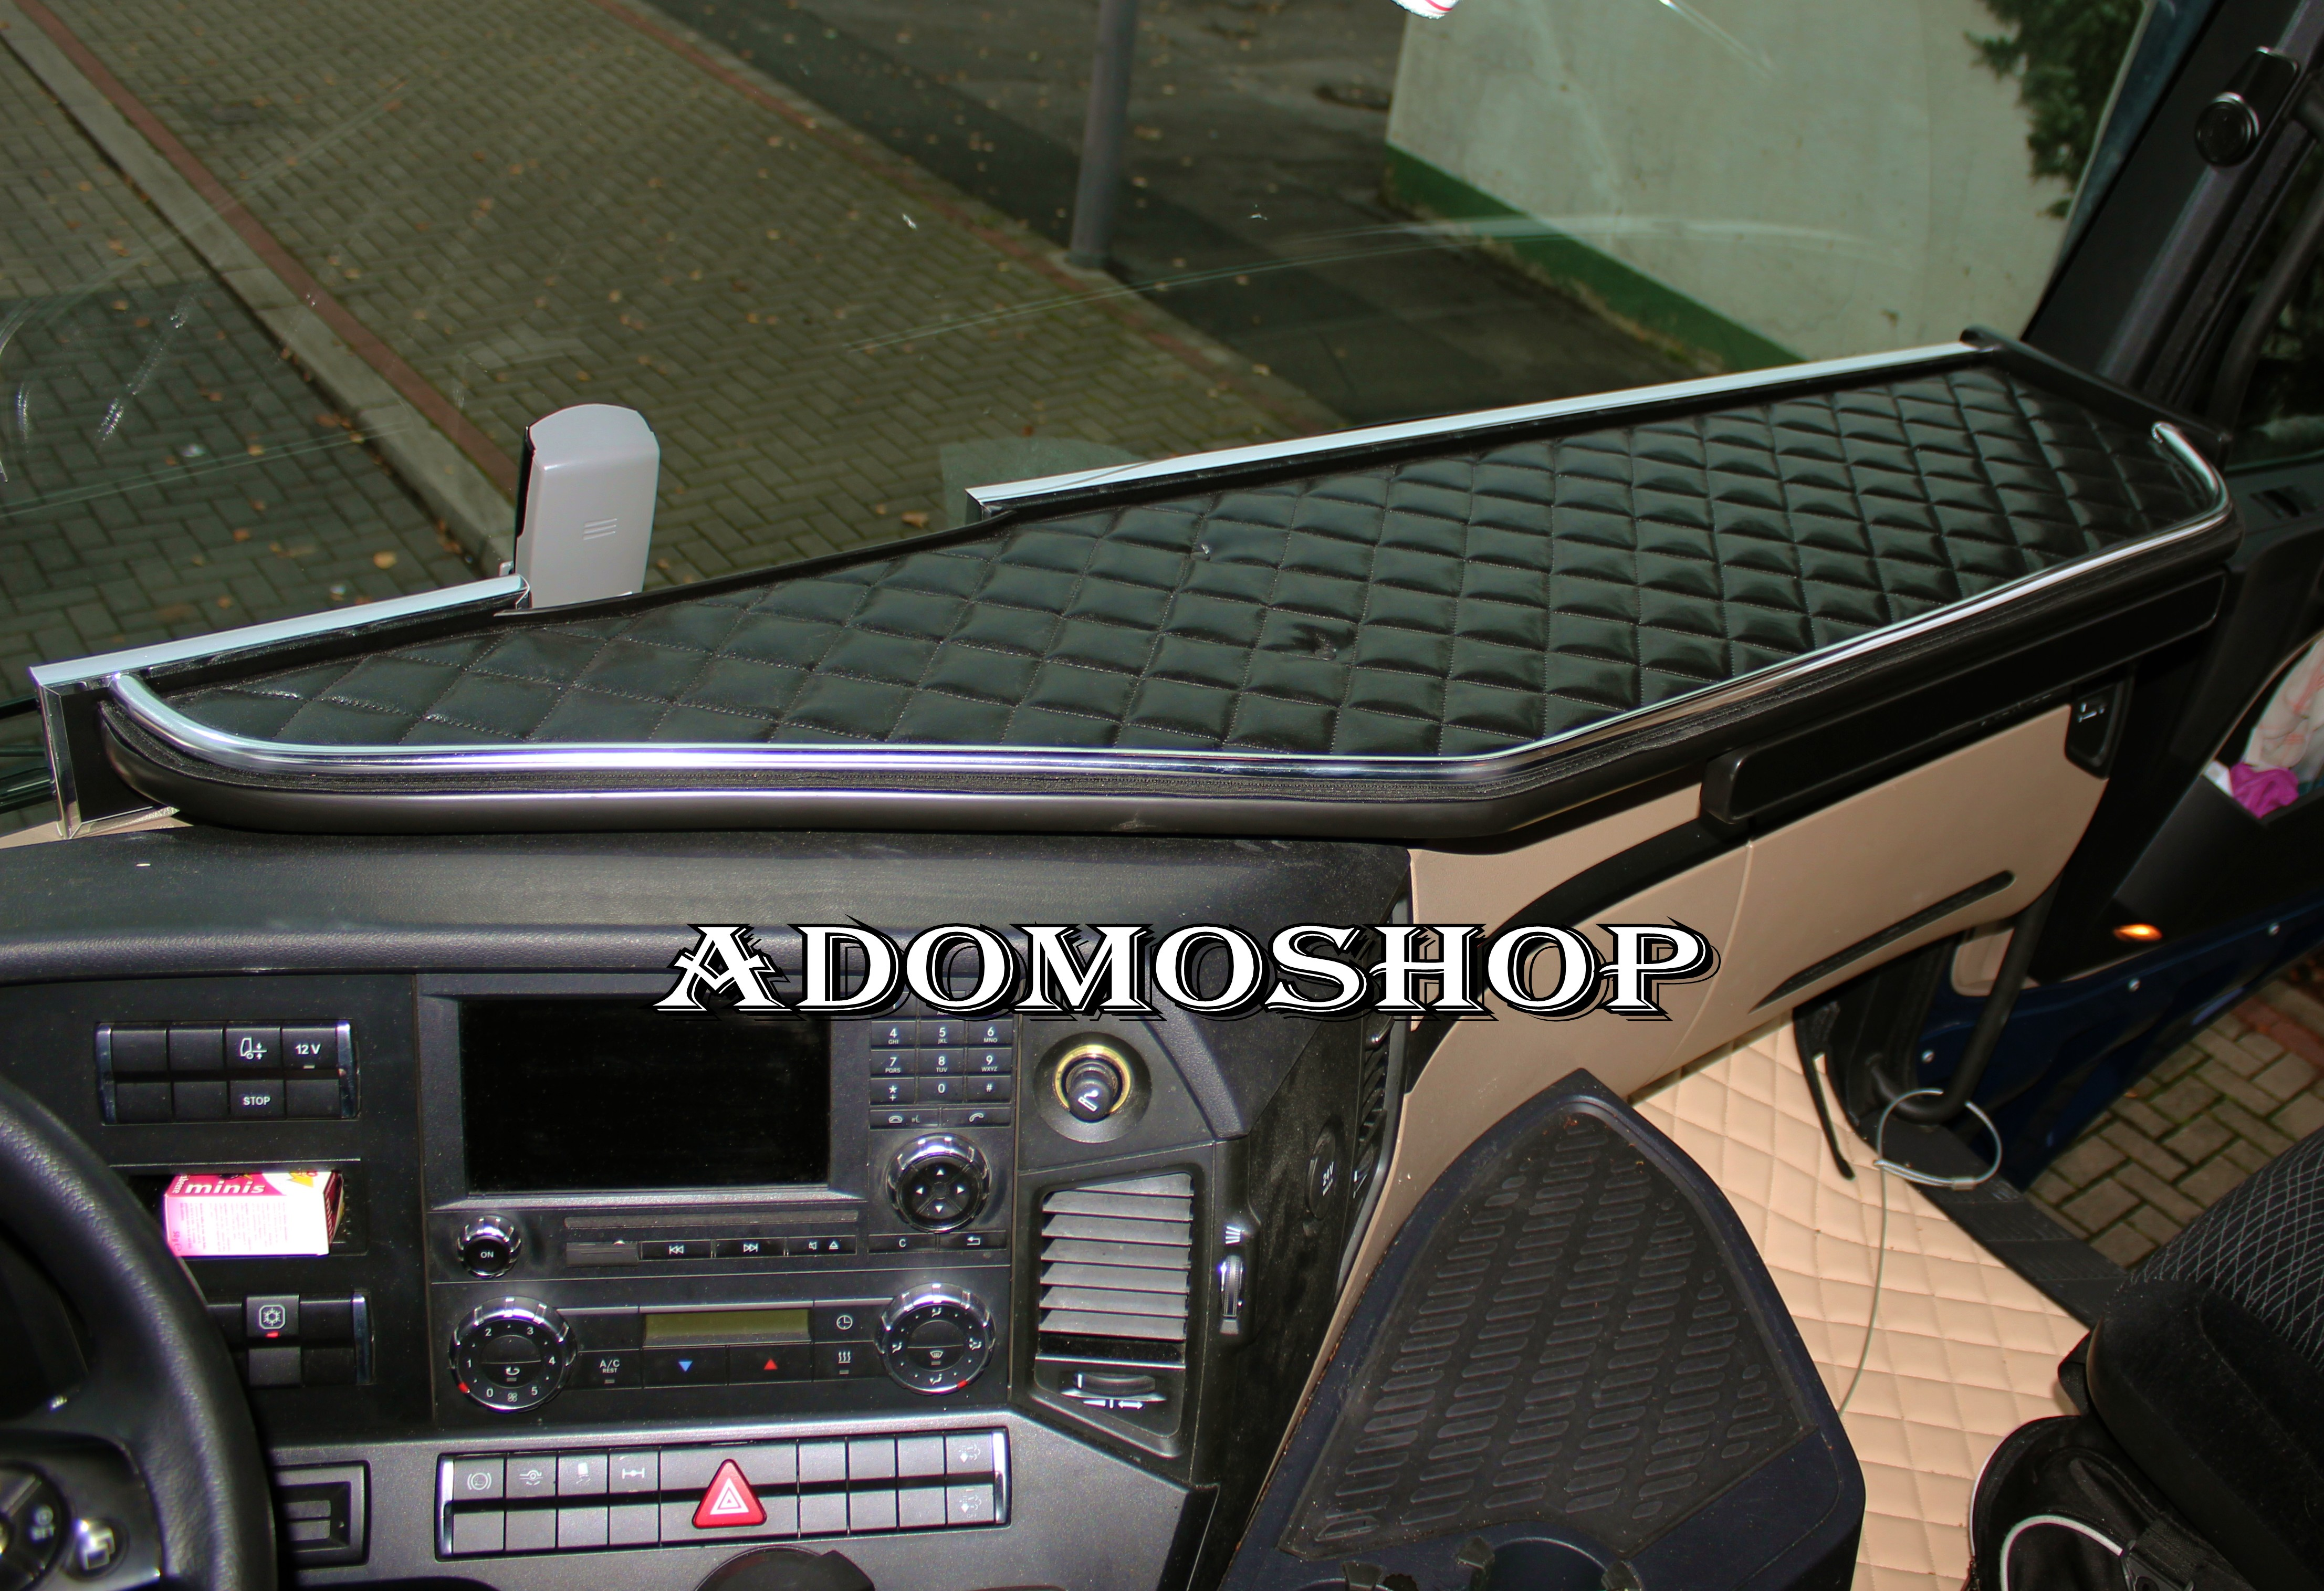 adomo lkw shop ablagetisch f r actros mp4 schublade. Black Bedroom Furniture Sets. Home Design Ideas